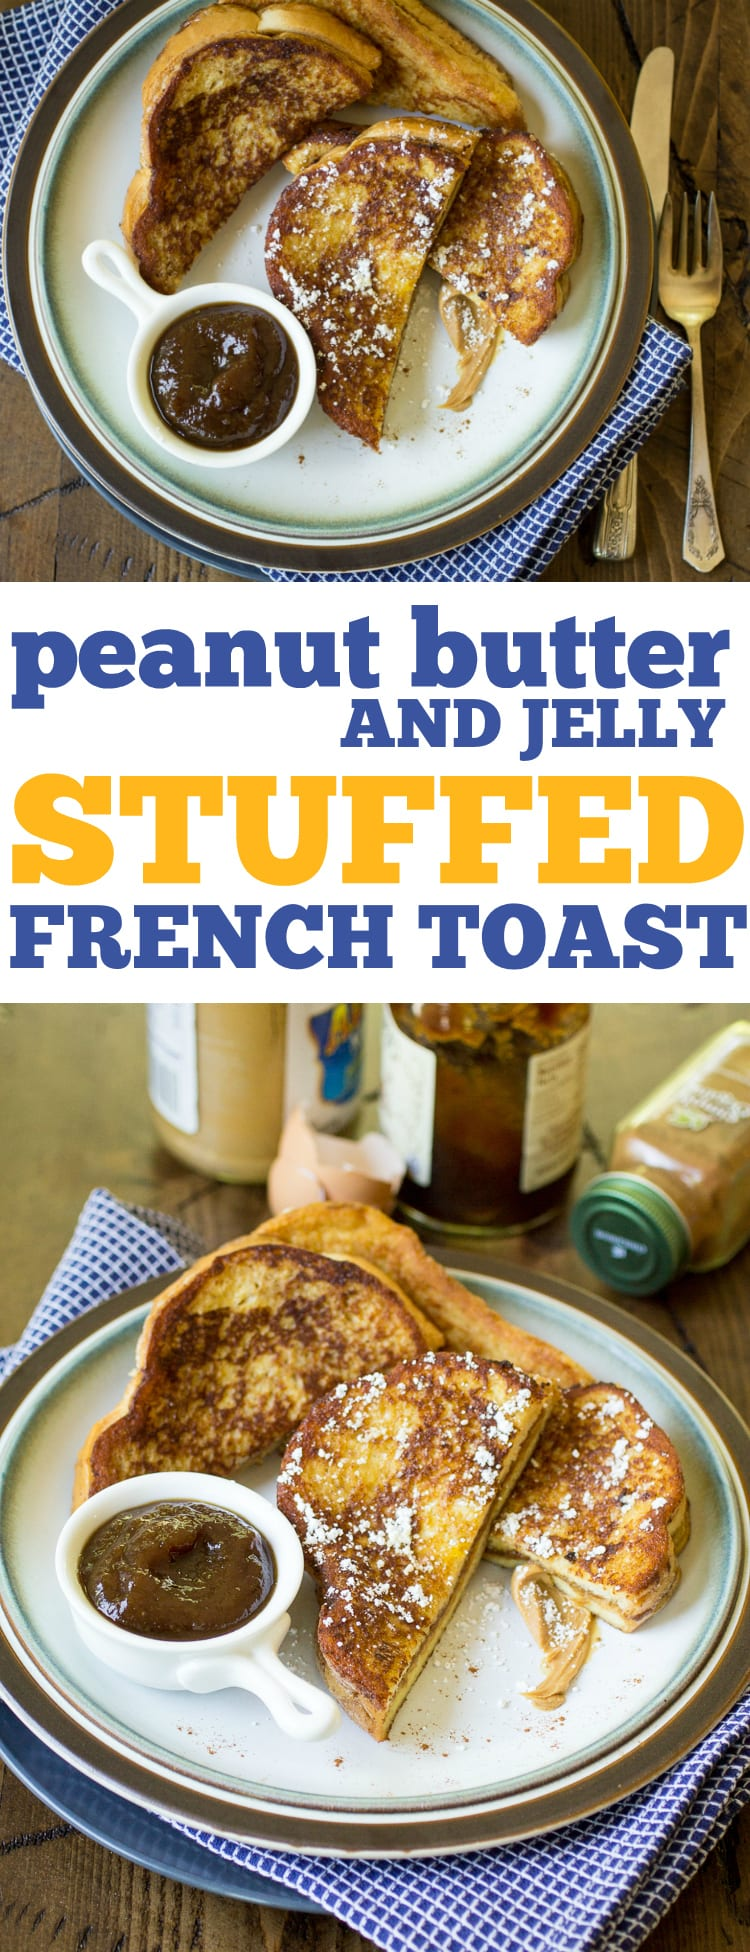 Peanut Butter and Jelly Stuffed French Toast is what breakfast dreams are made of! It's as easy as making a PB&J sandwich, dipping it in batter, and frying the whole thing up as french toast. Perfection!